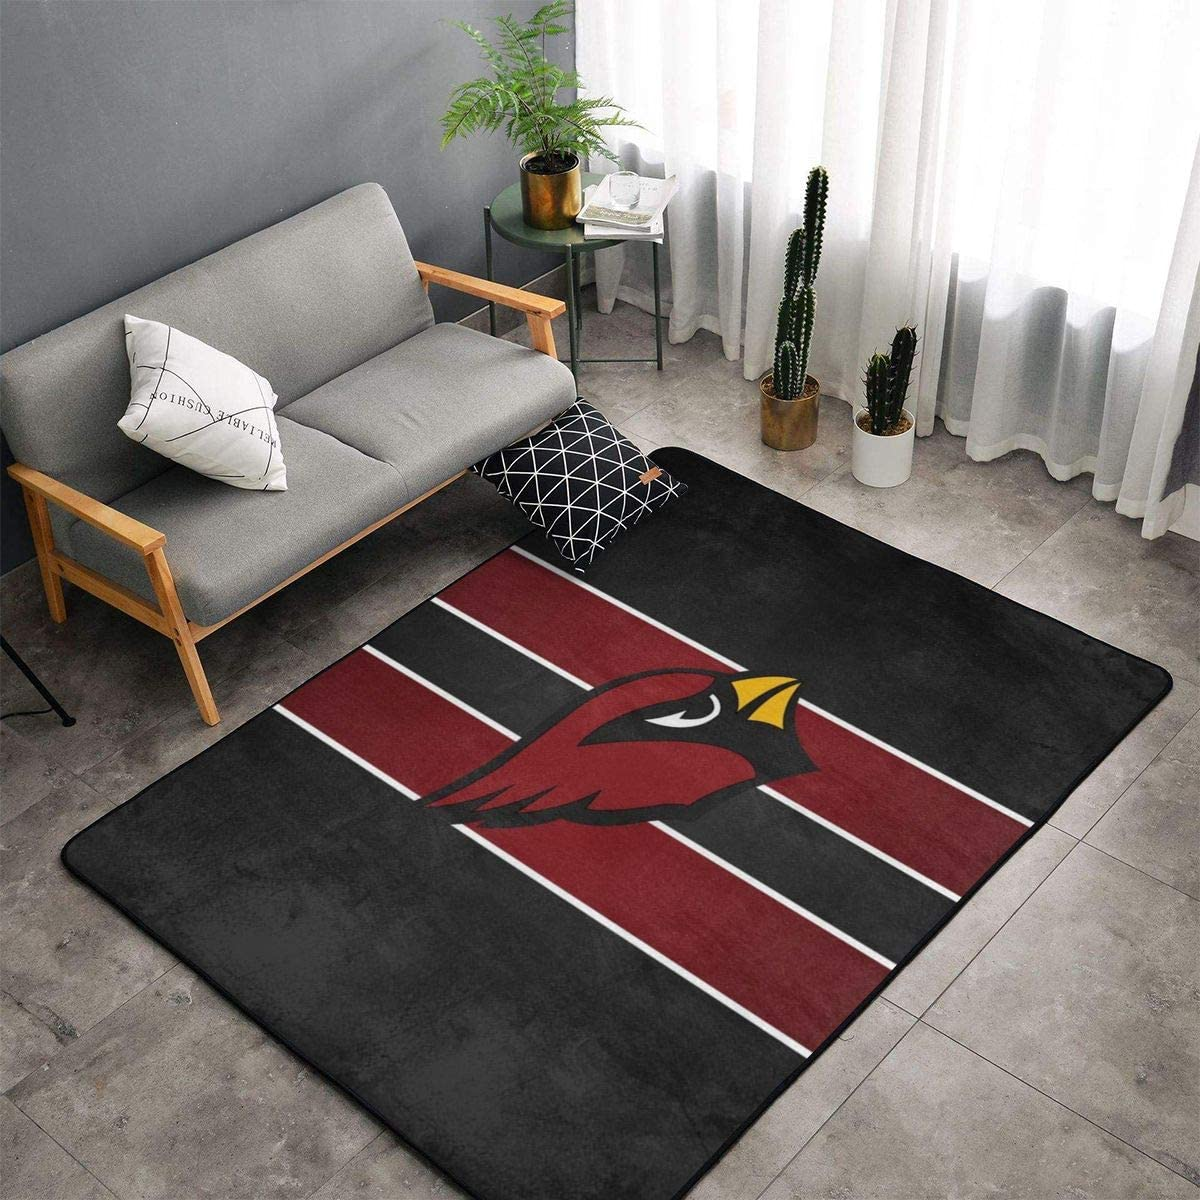 MOOPZEEA Arizona Cardinals Flag Ultra Soft Carpet Indoor Non Slip Area Rugs Home Office Cafe Carpets Suitable for Children Living Room Bedroom Home Bar Rugs